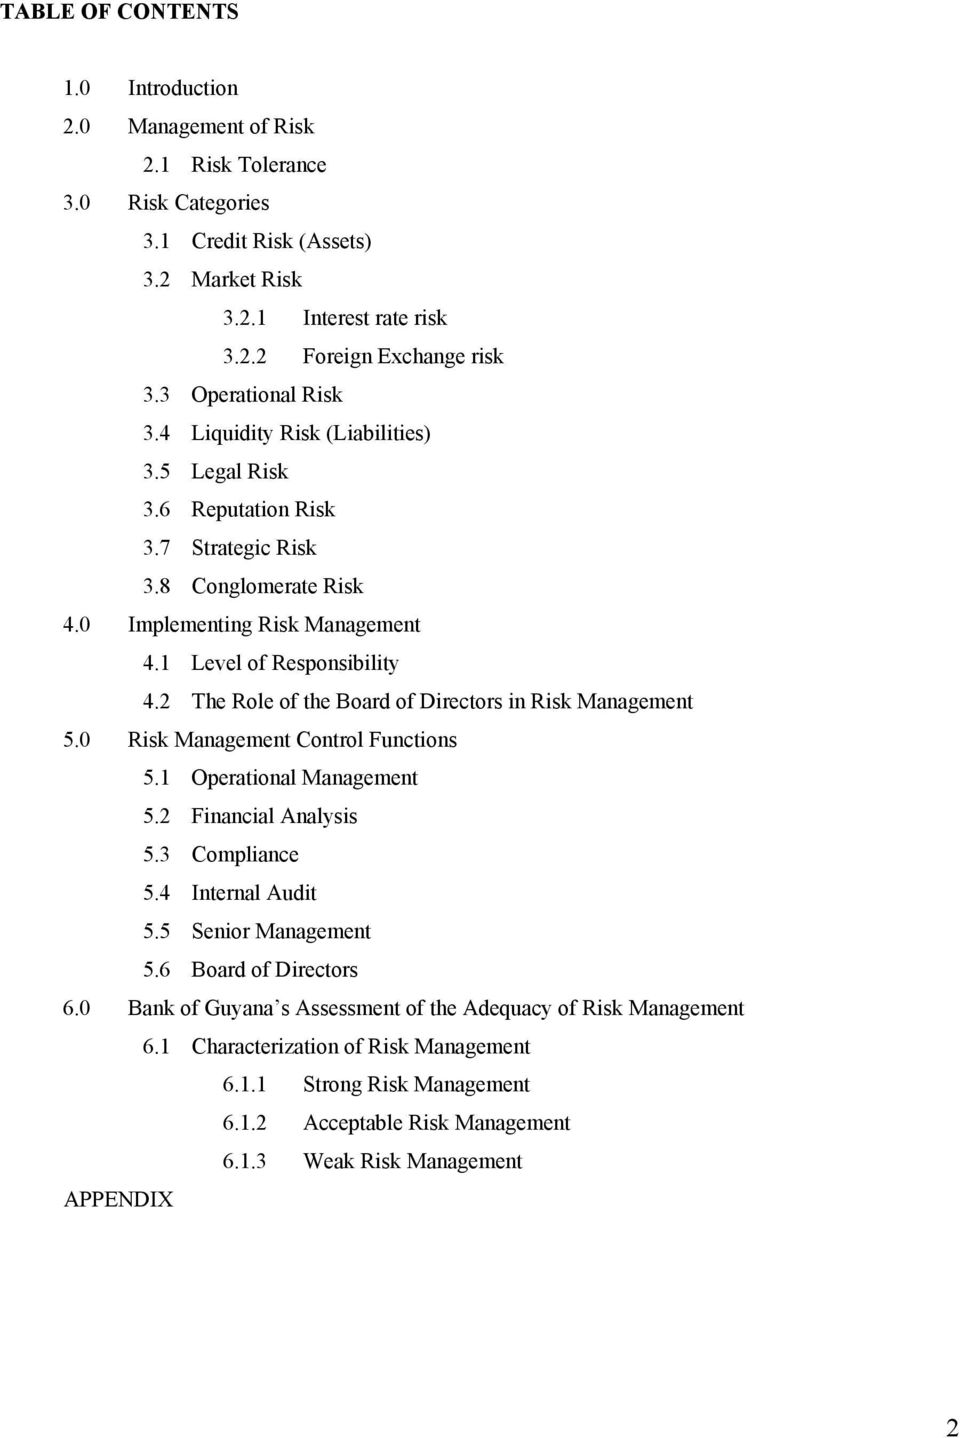 2 The Role of the Board of Directors in Risk Management 5.0 Risk Management Control Functions 5.1 Operational Management 5.2 Financial Analysis 5.3 Compliance 5.4 Internal Audit 5.